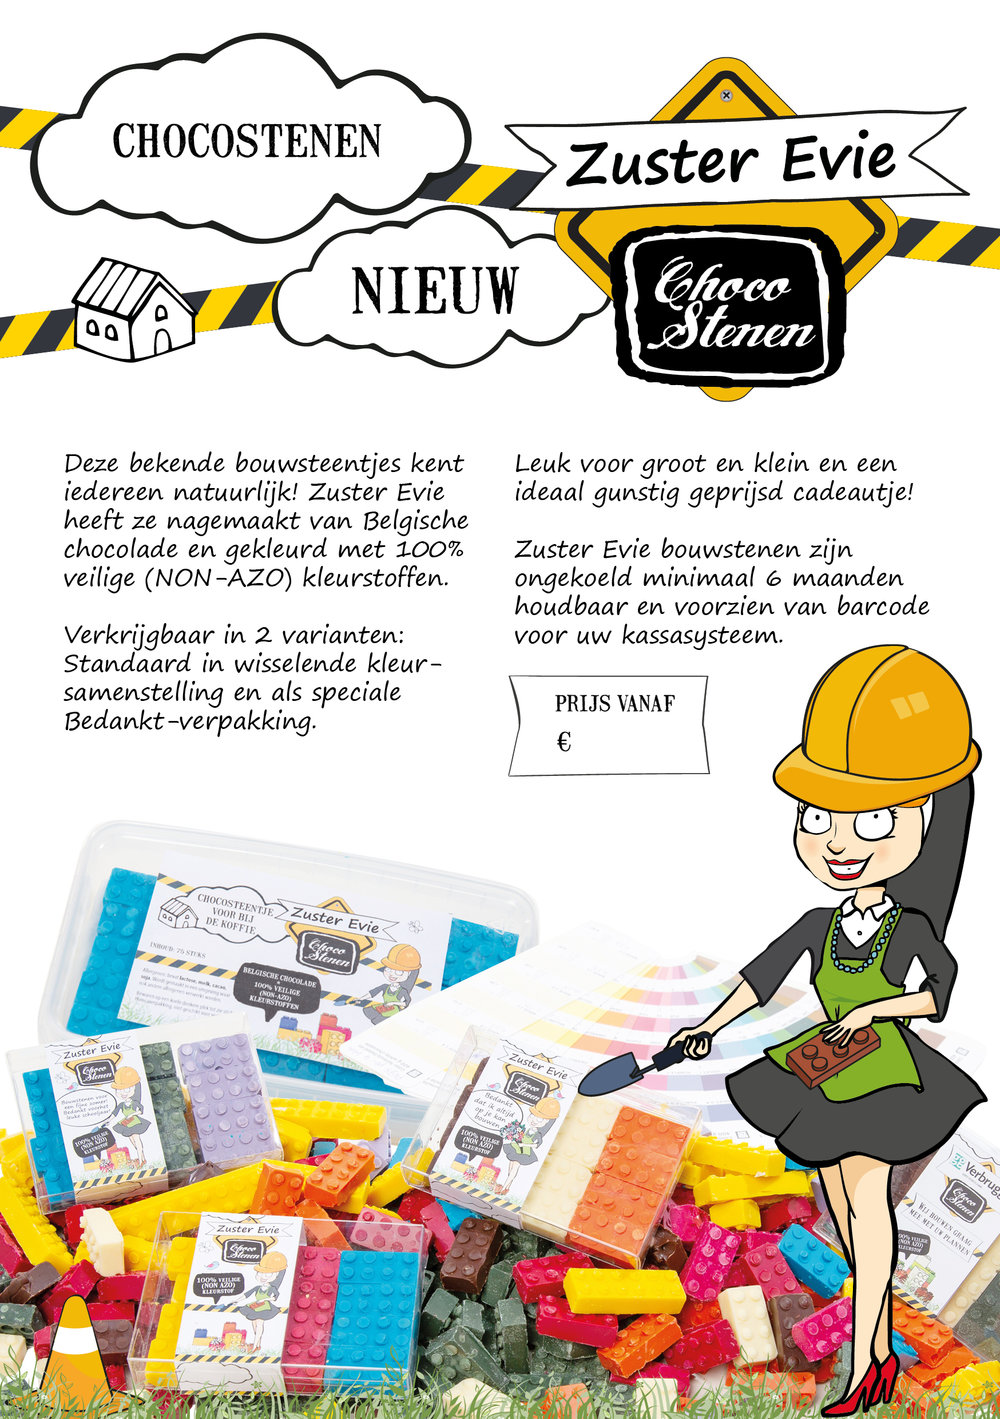 ZandBij_ZusterEvie_ChocoStenen_flyer1.jpg